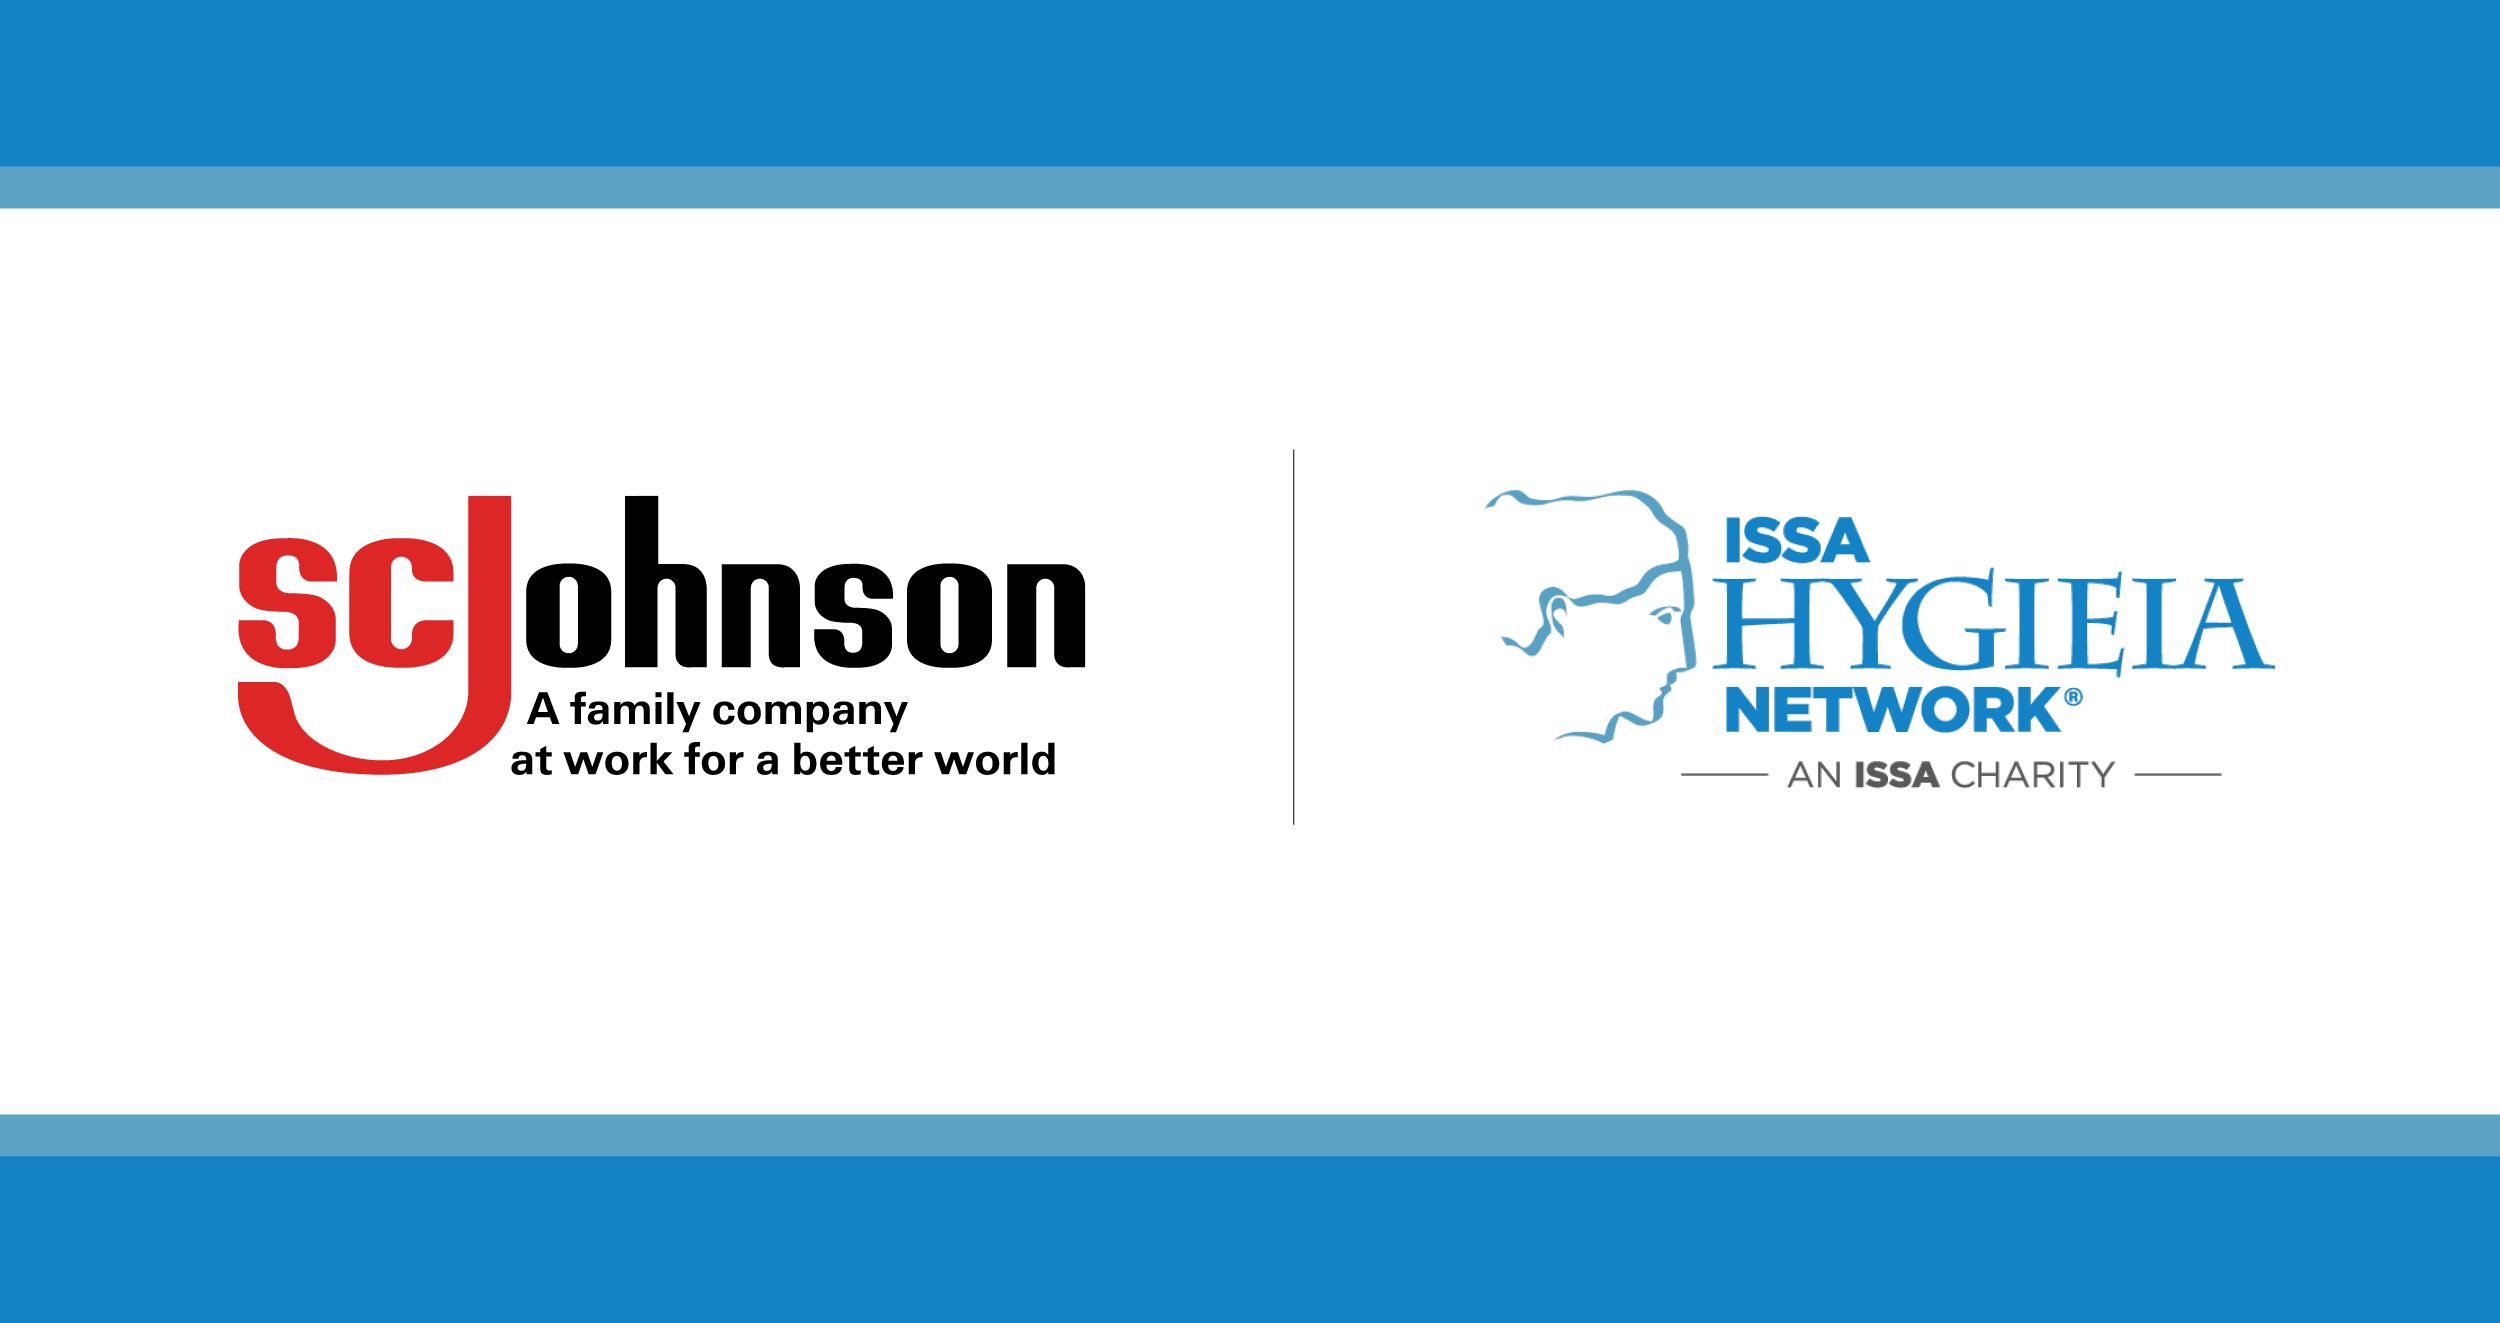 SC Johnson and Hygieia Logo